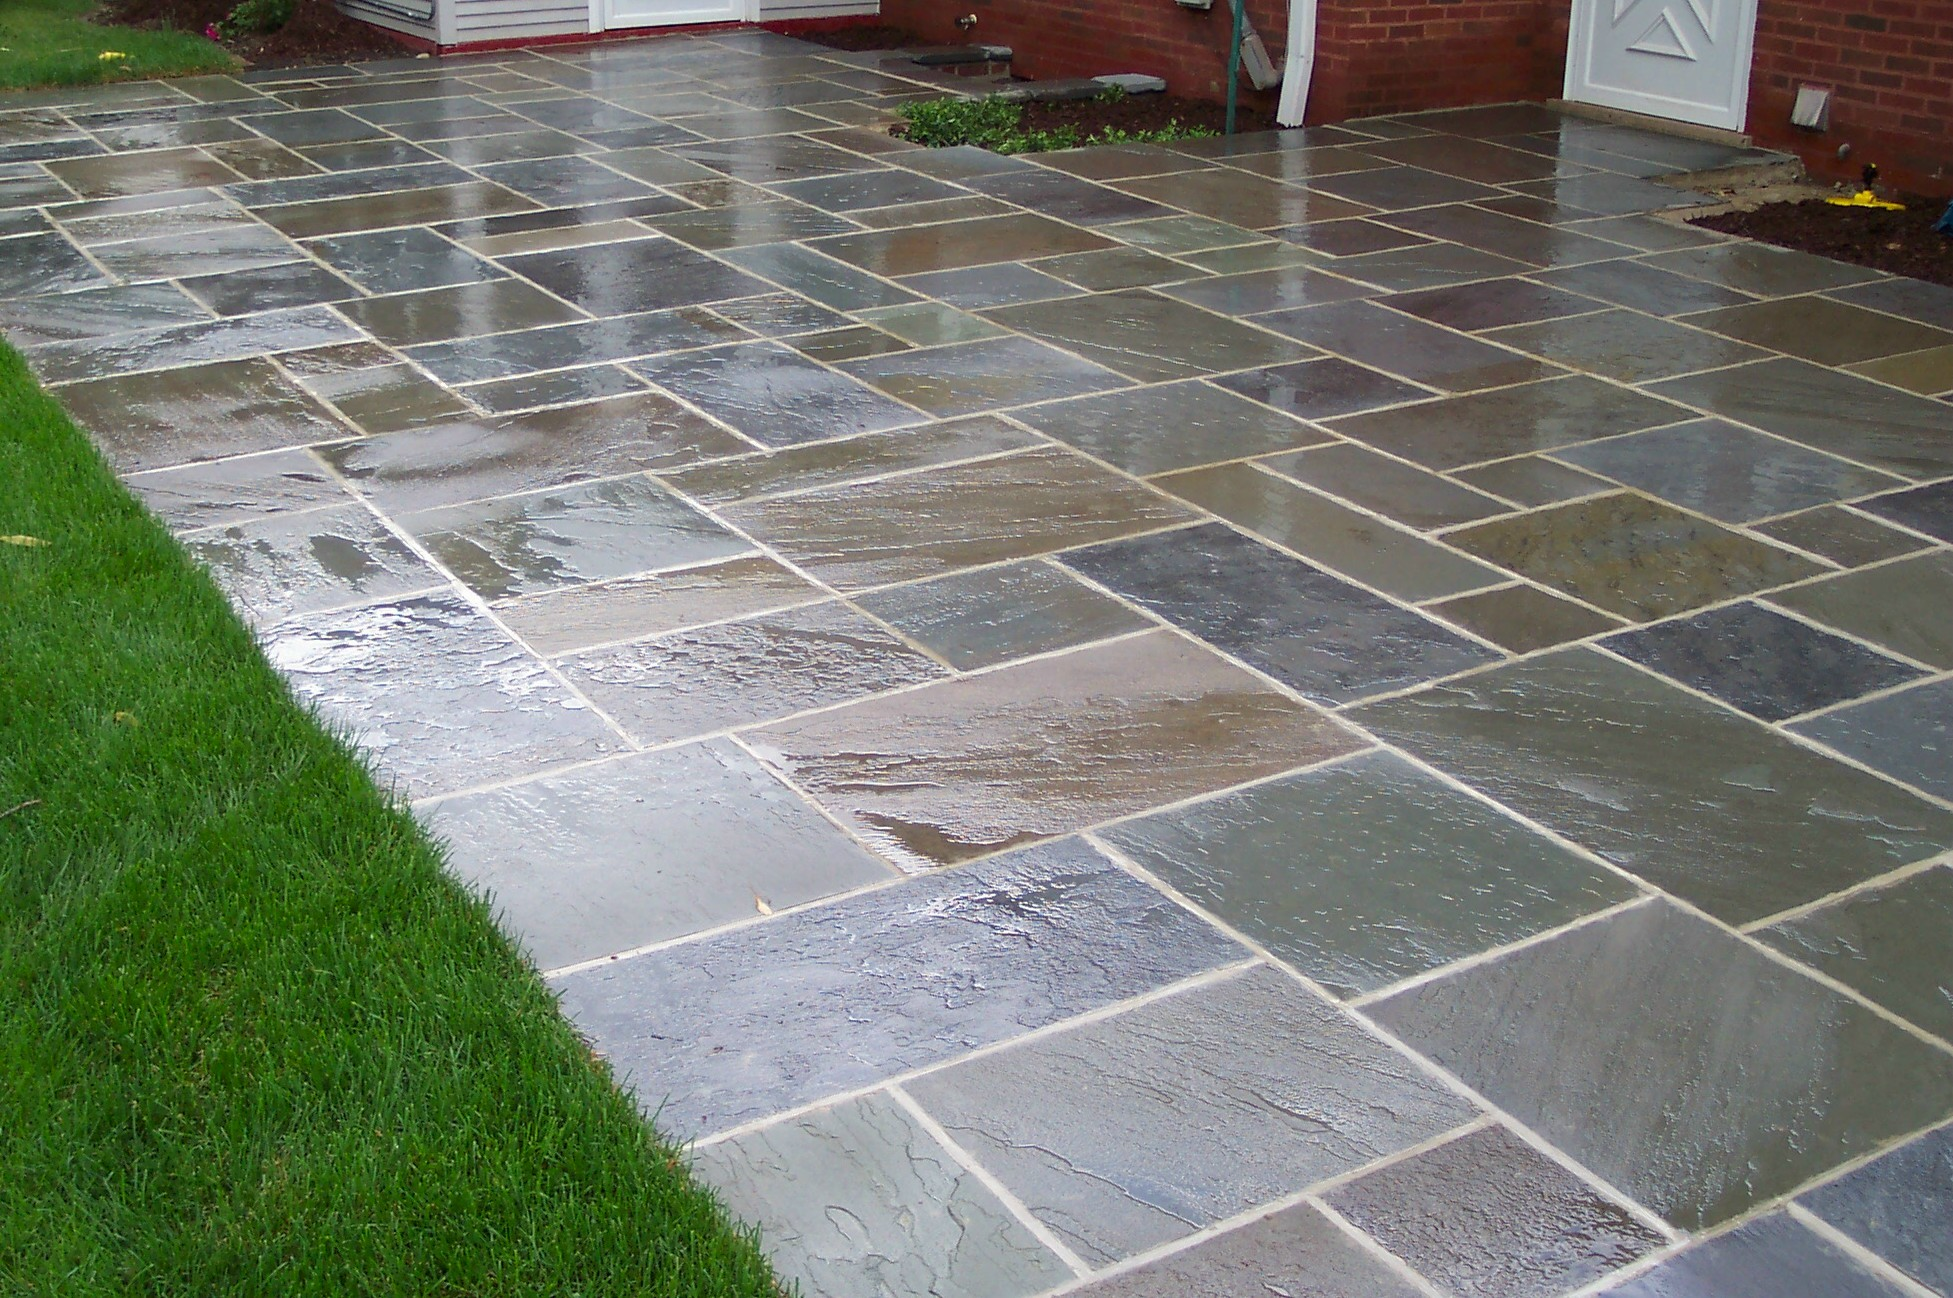 Bluestone patio pavers patio design ideas for Paver patio ideas pictures